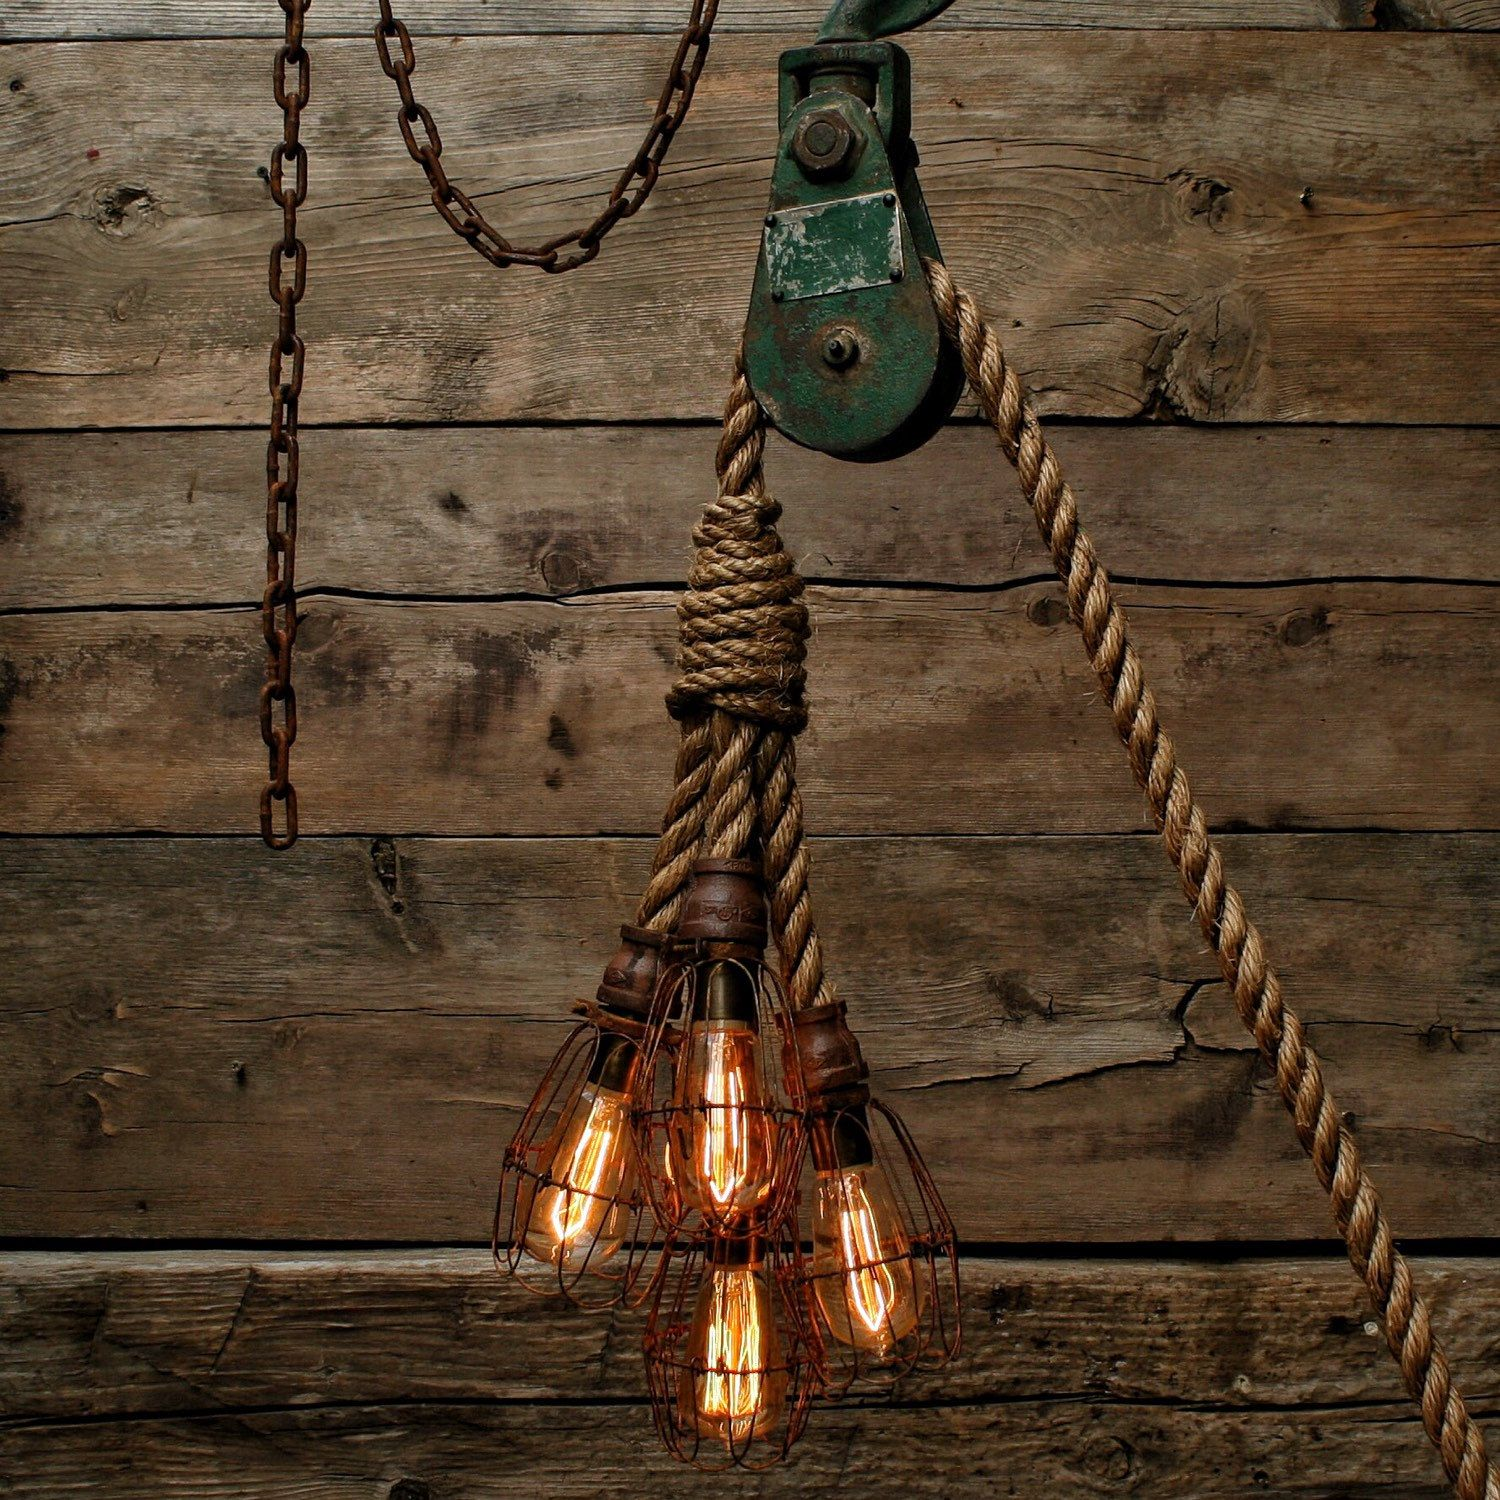 The hydra chandelier industrial manila rope pendant Log cabin chandelier